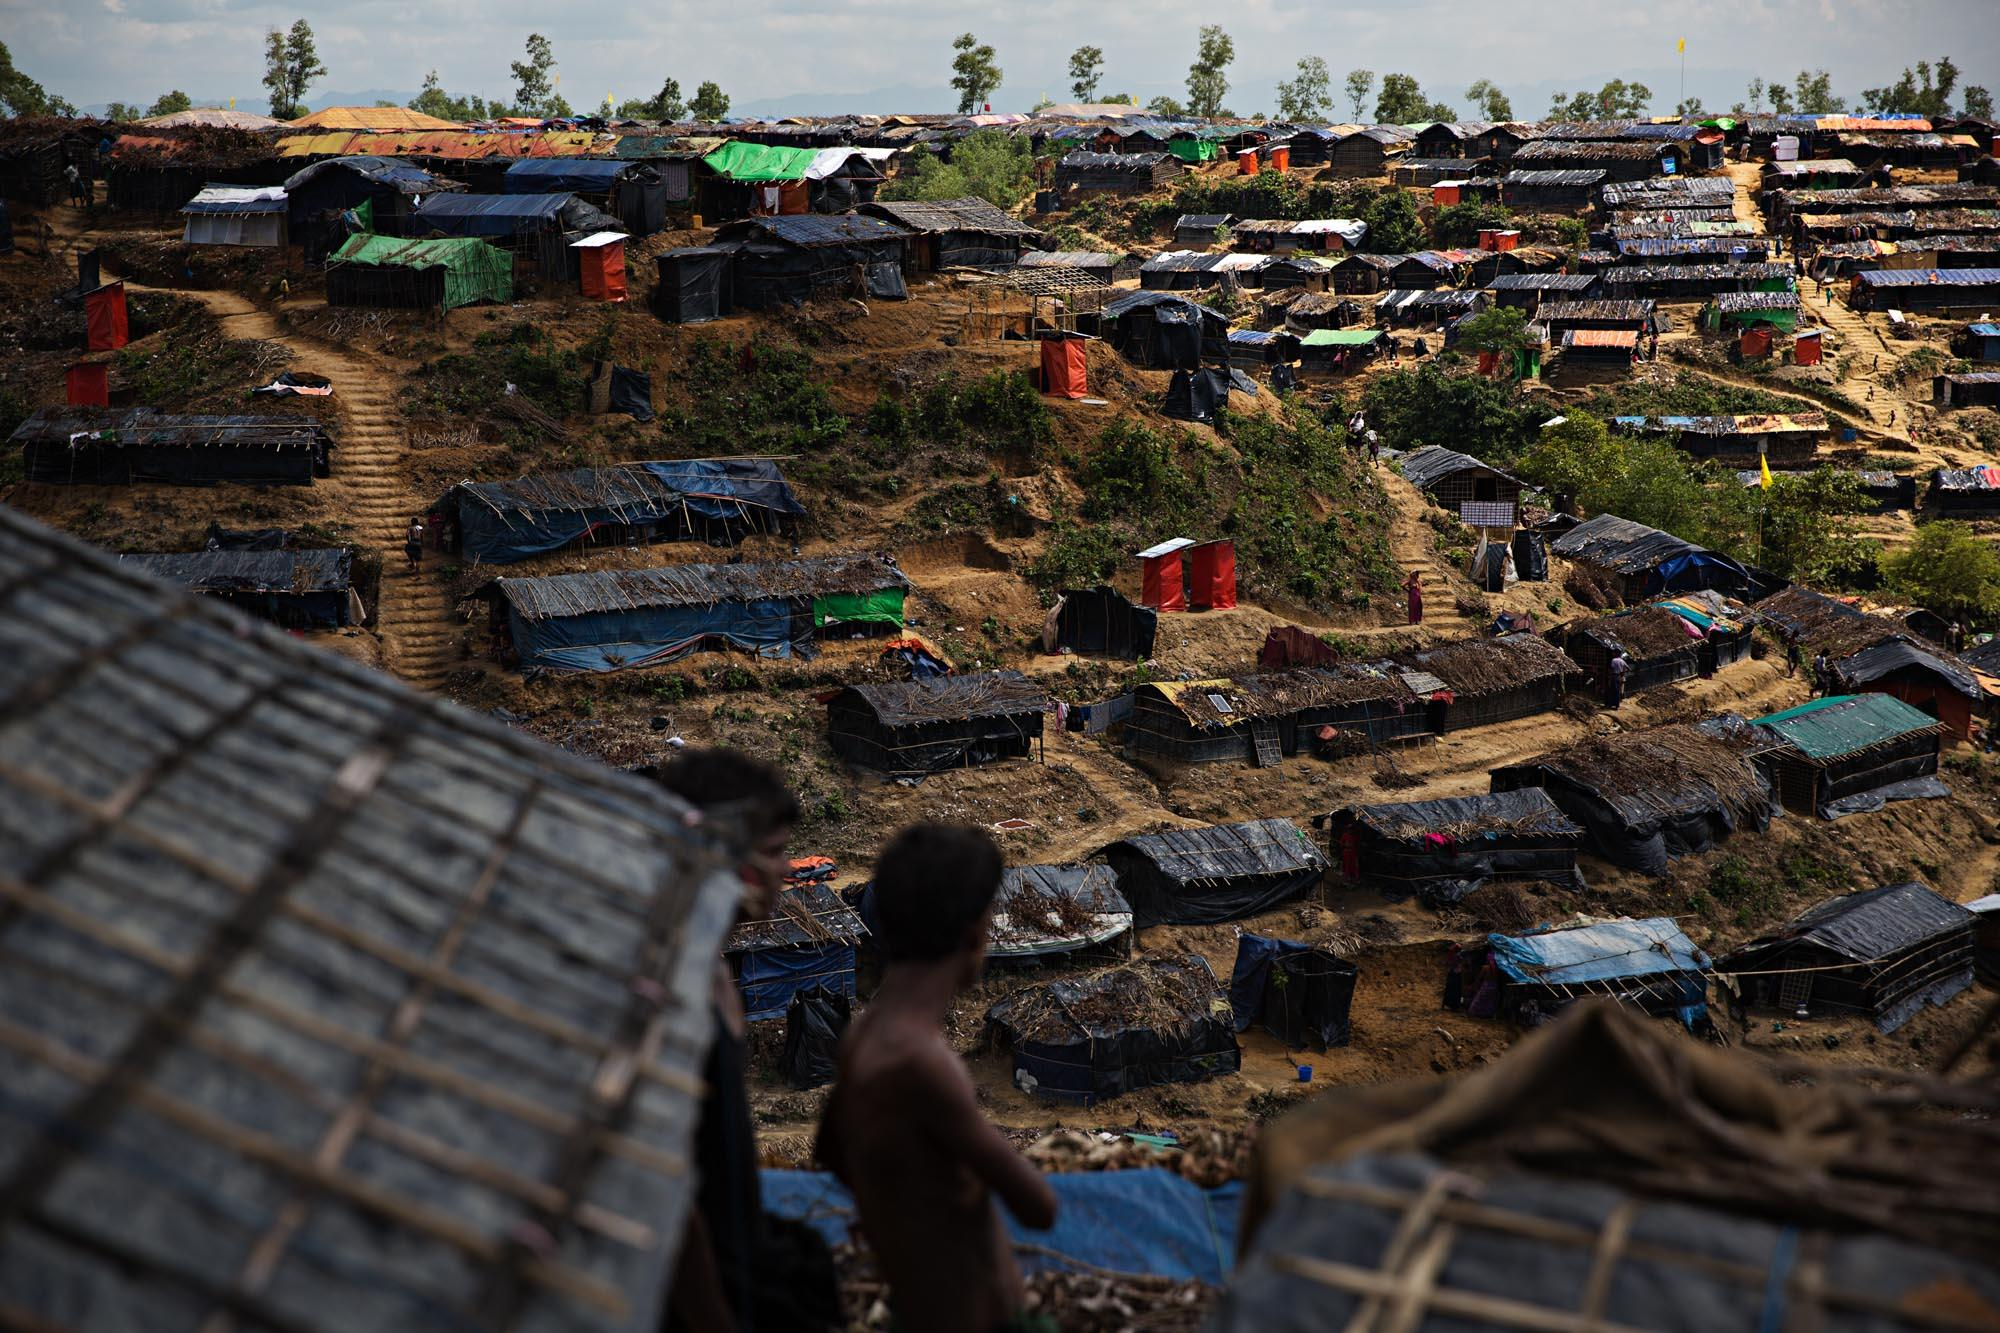 Makeshift huts are seen in a Rohingya refugee camp outside of Cox's Bazar, Bangladesh. These are just a small handful of the hundreds of thousands of tents and lean-tos setup throughout the hills and valleys.